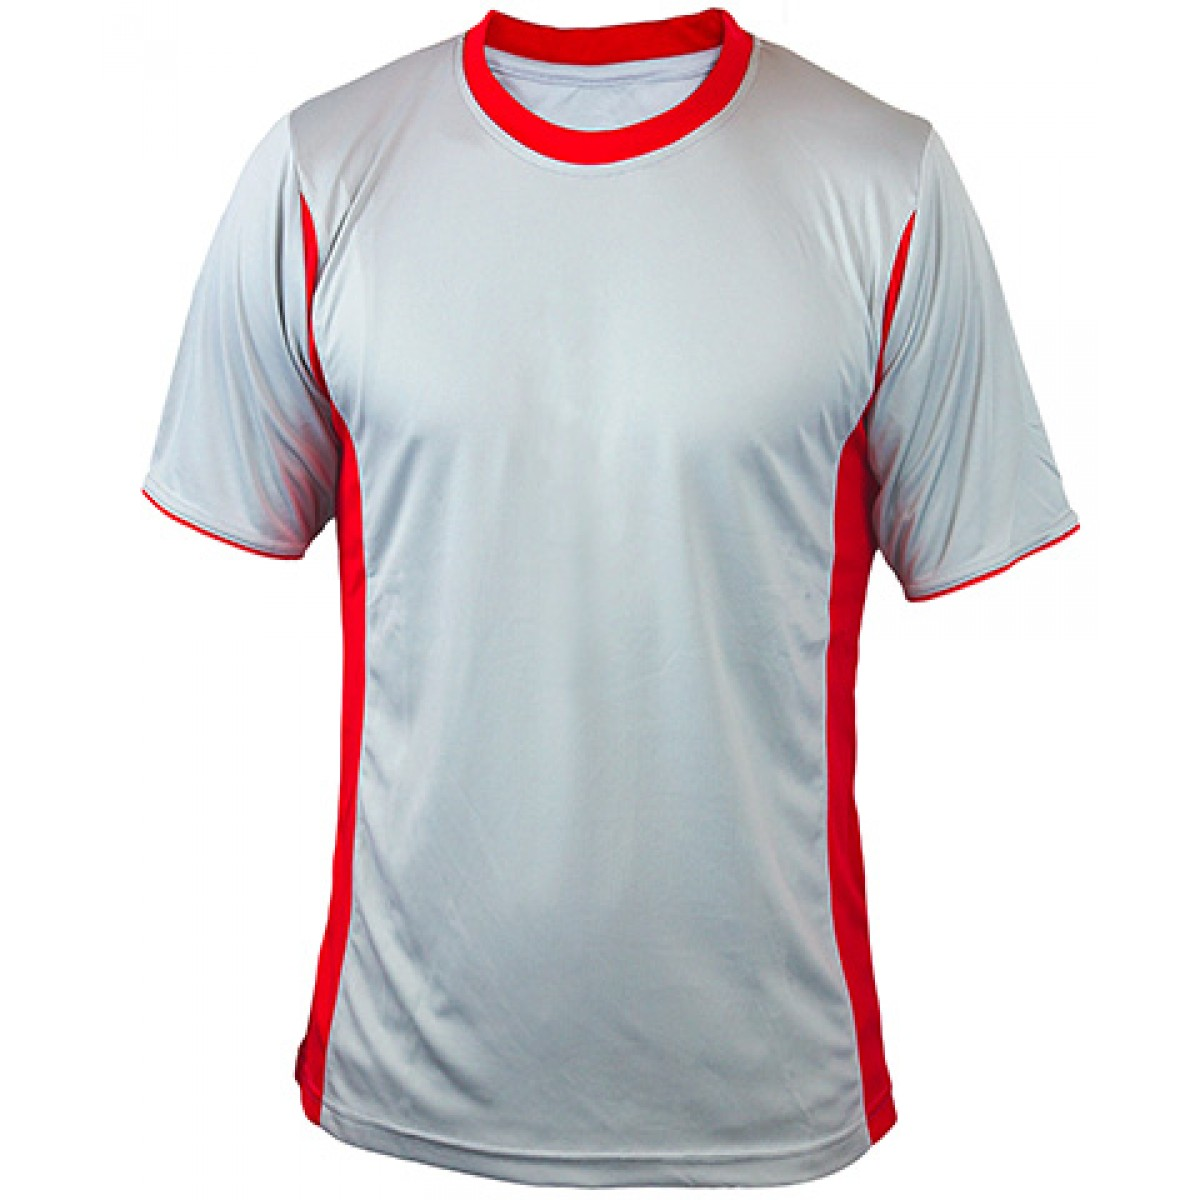 Gray Short Sleeves Performance With Red Side Insert-Gray/Red-YL